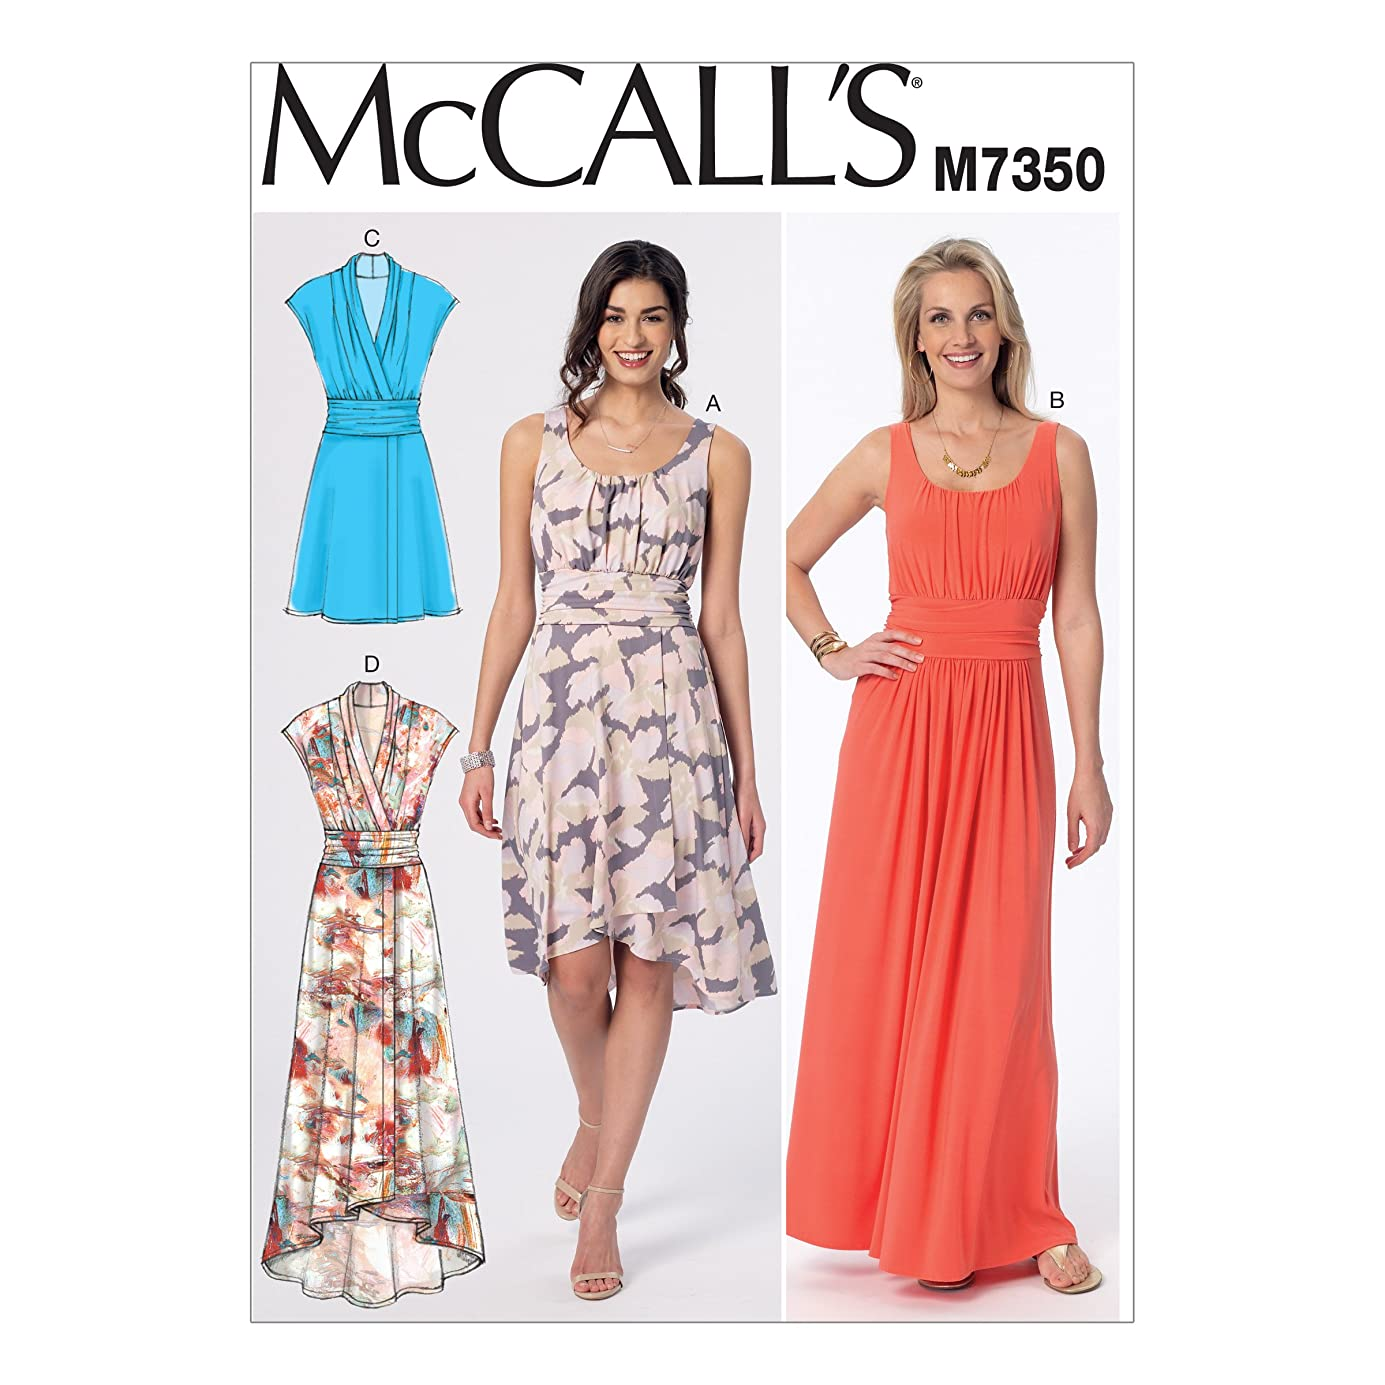 McCall's Patterns M7350 Misses' Gathered Scoop Neck or Surplice Dresses, Size E5 (14-16-18-20-22) tiedpt8316